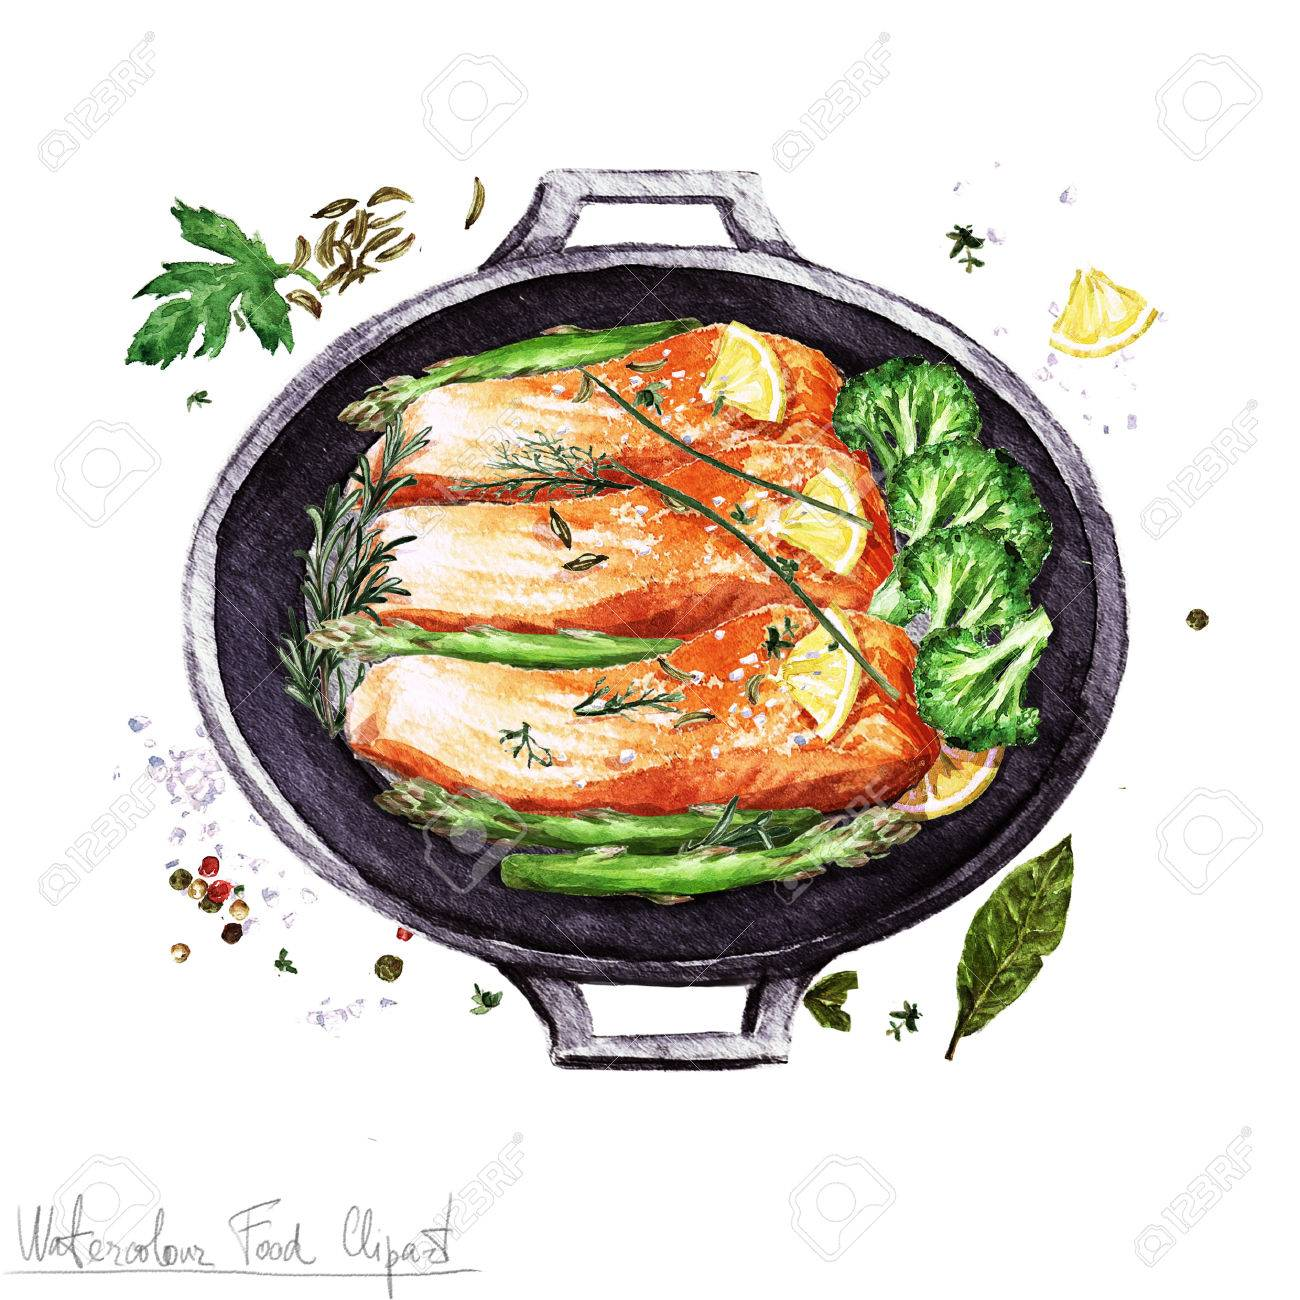 Watercolor Food Clipart - Salmon In A Cooking Pot Stock Photo ... for cooked salmon clipart  103wja